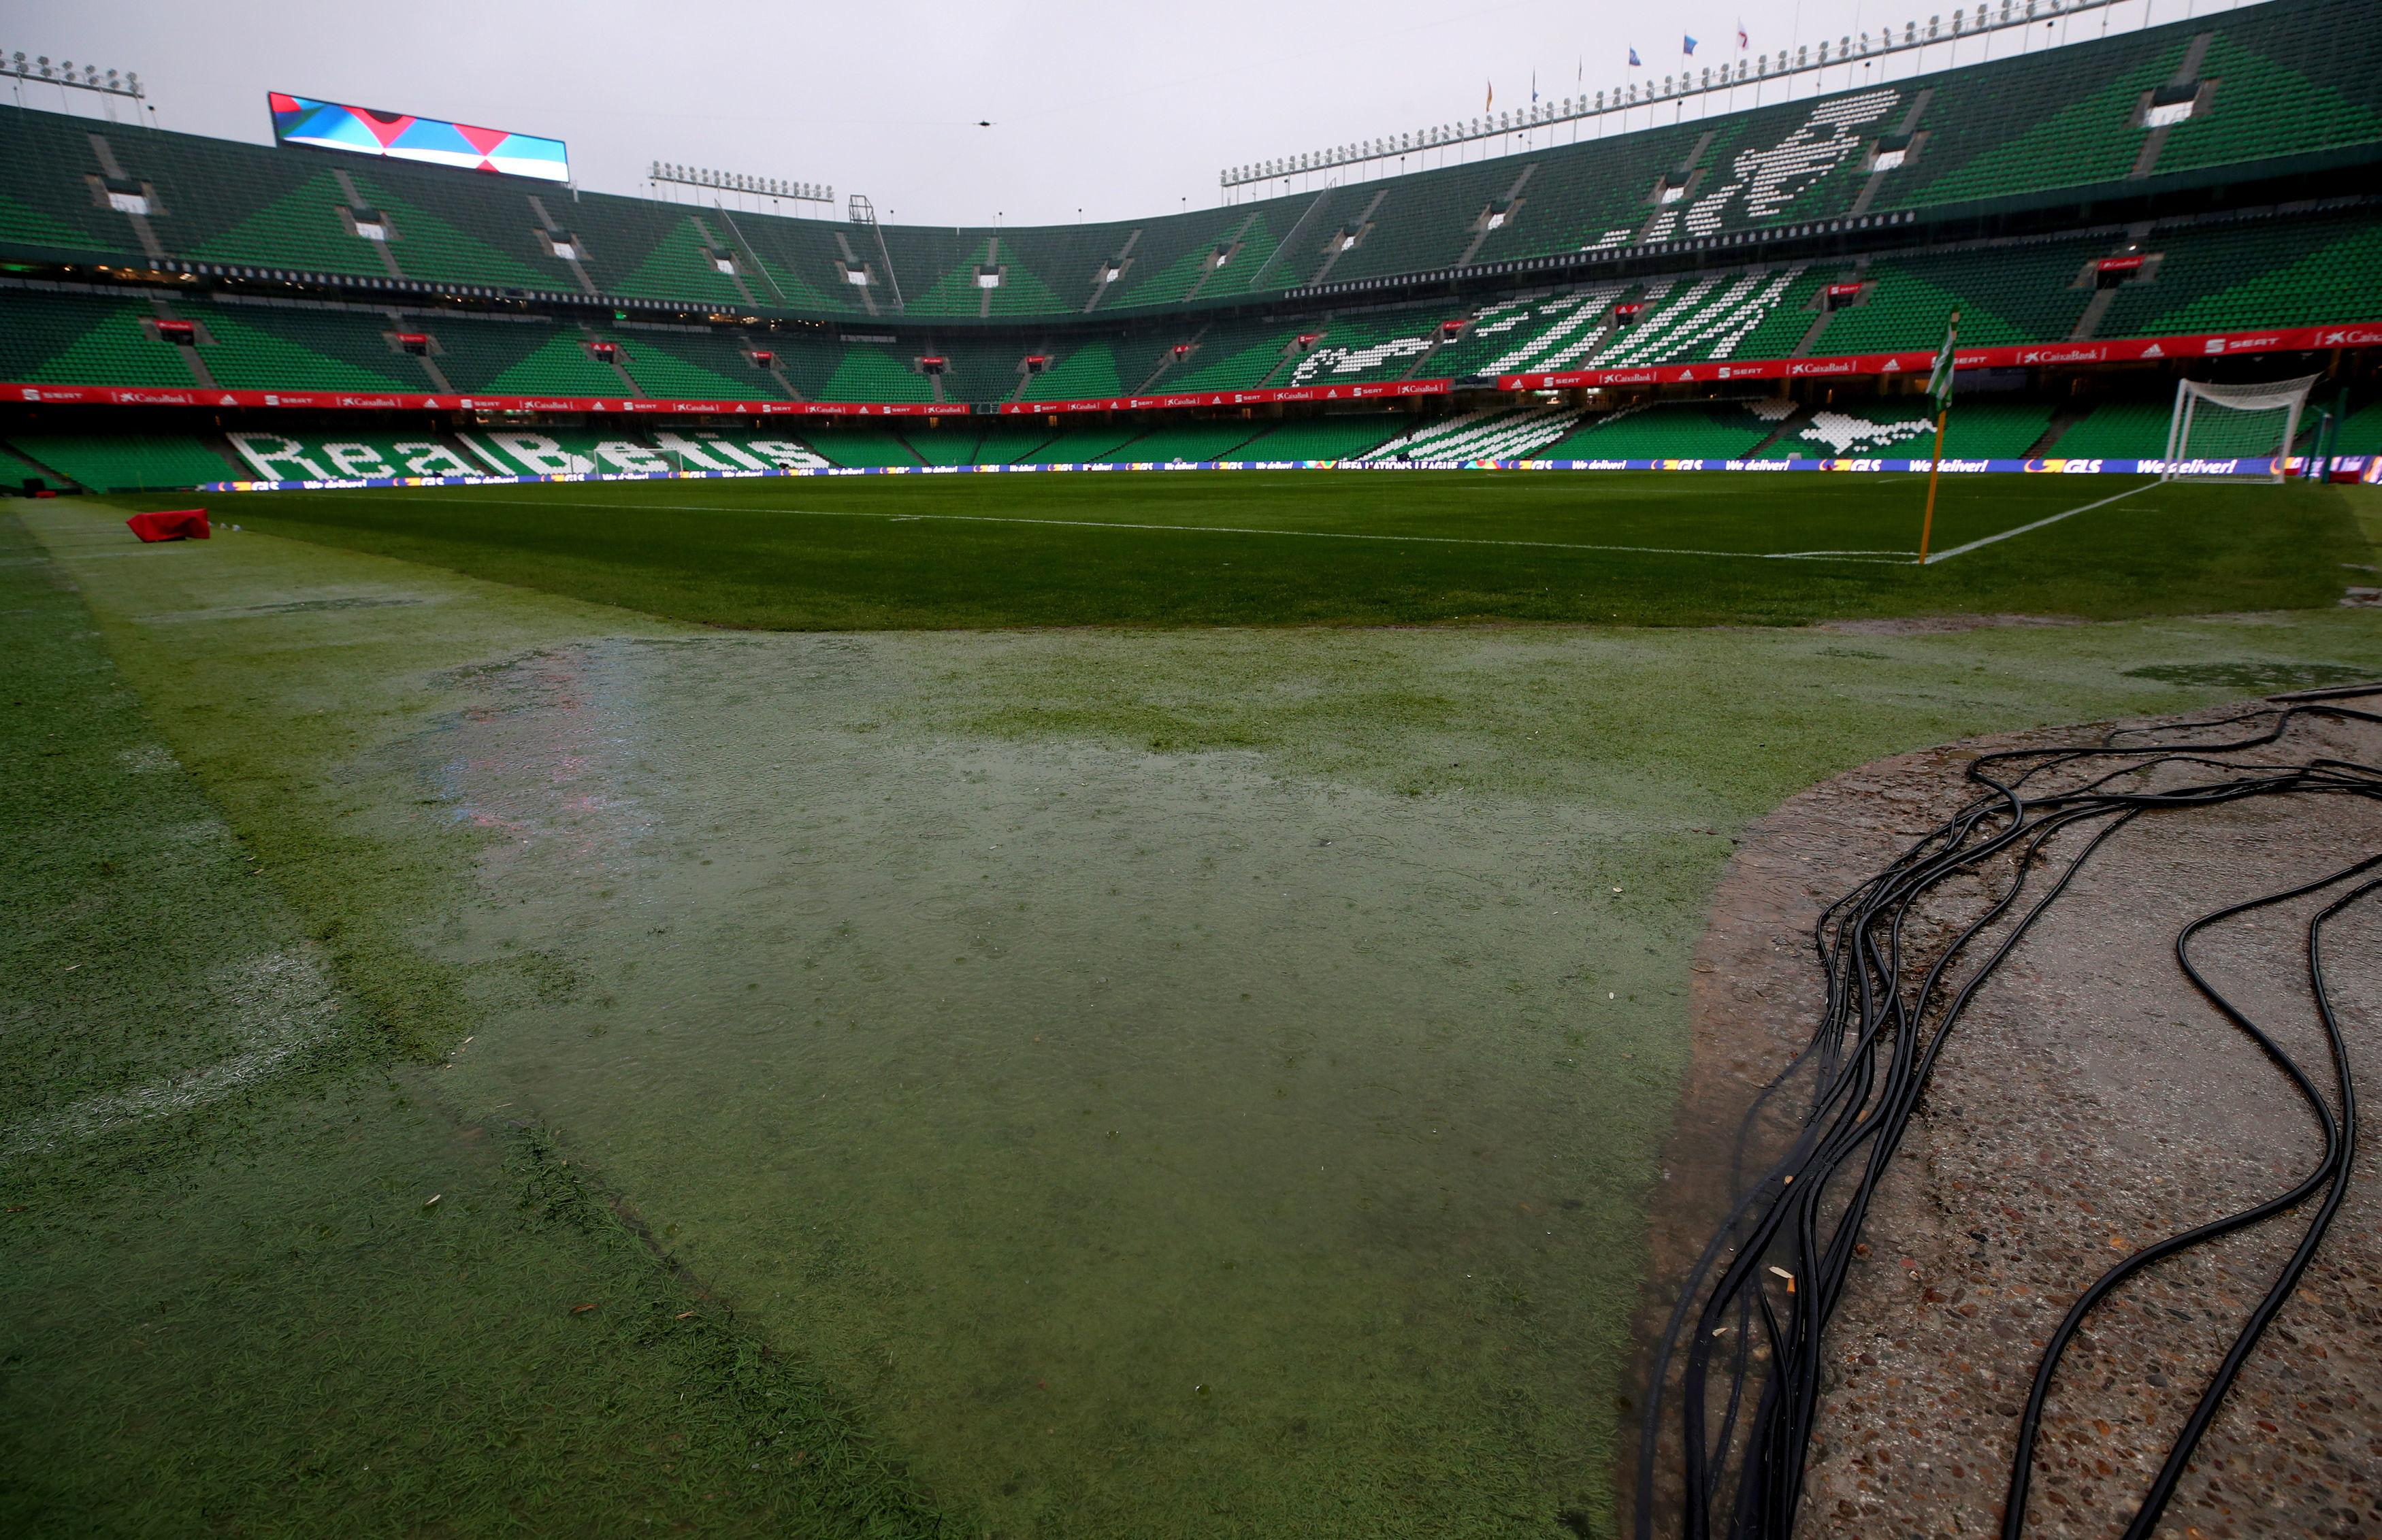 The areas around the playing surface are failing to withstand the torrential downpour